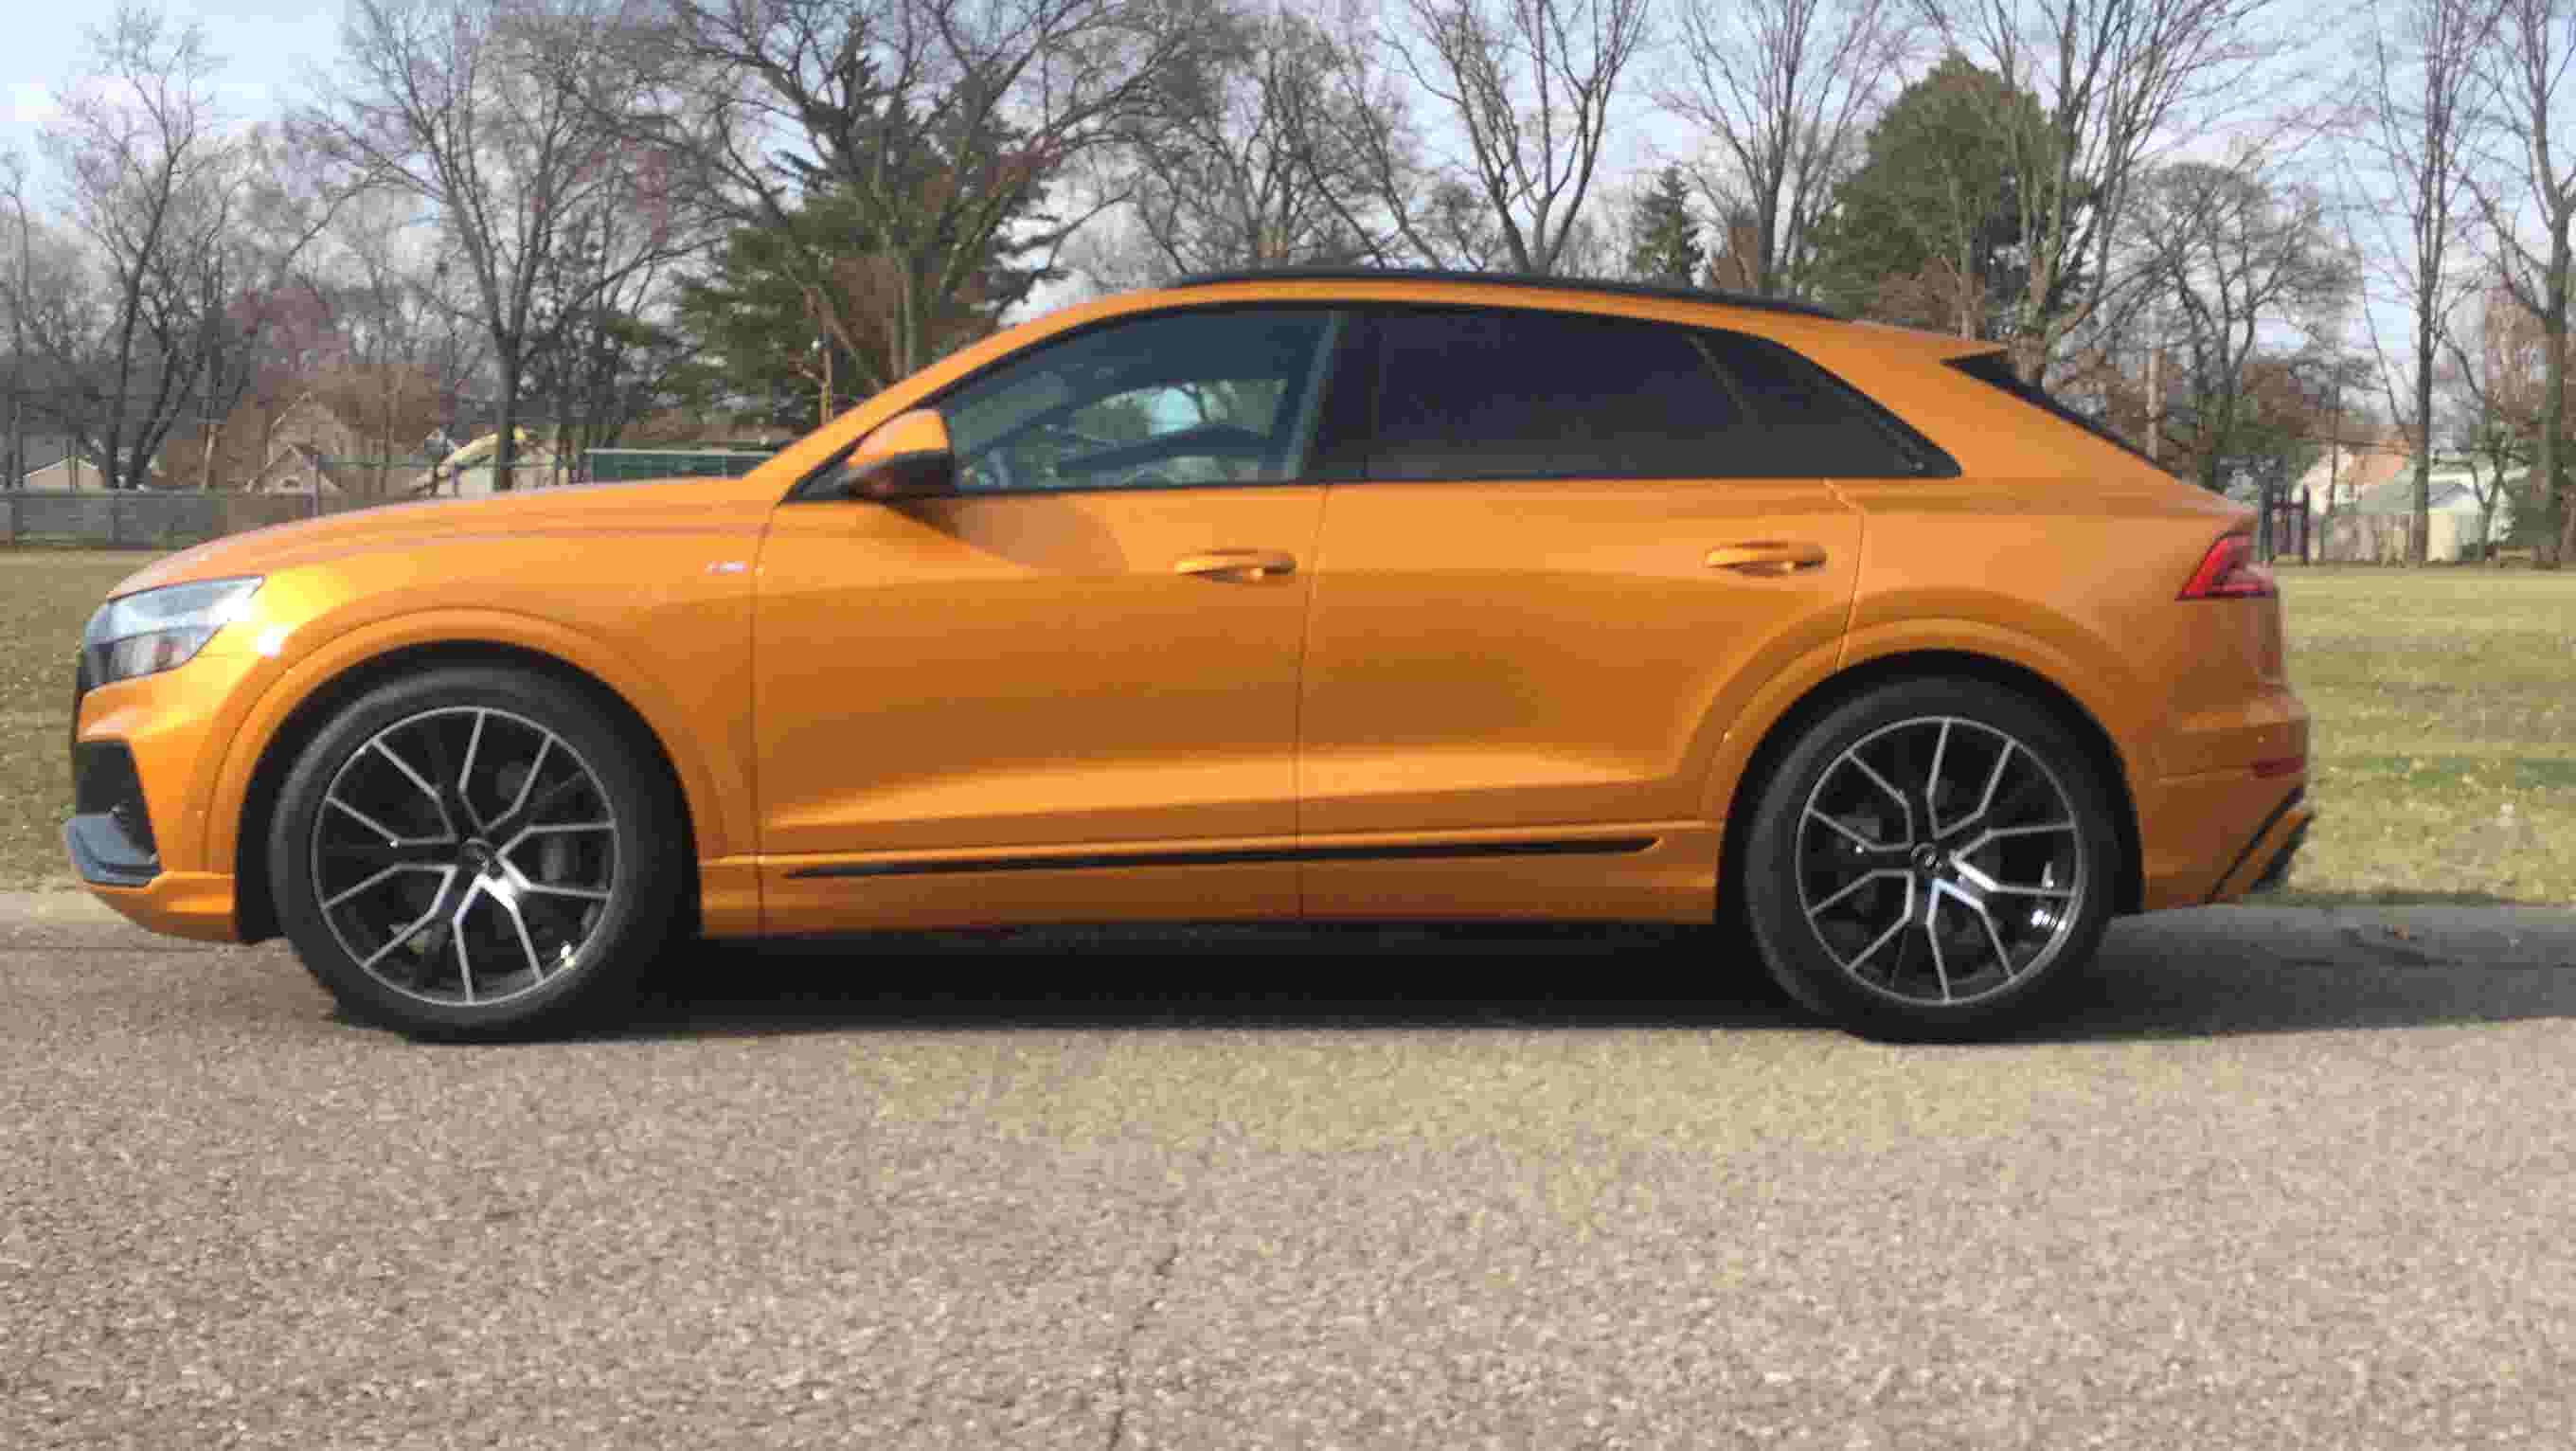 2019 Audi Q8: A new kind of luxury SUV asks if size matters